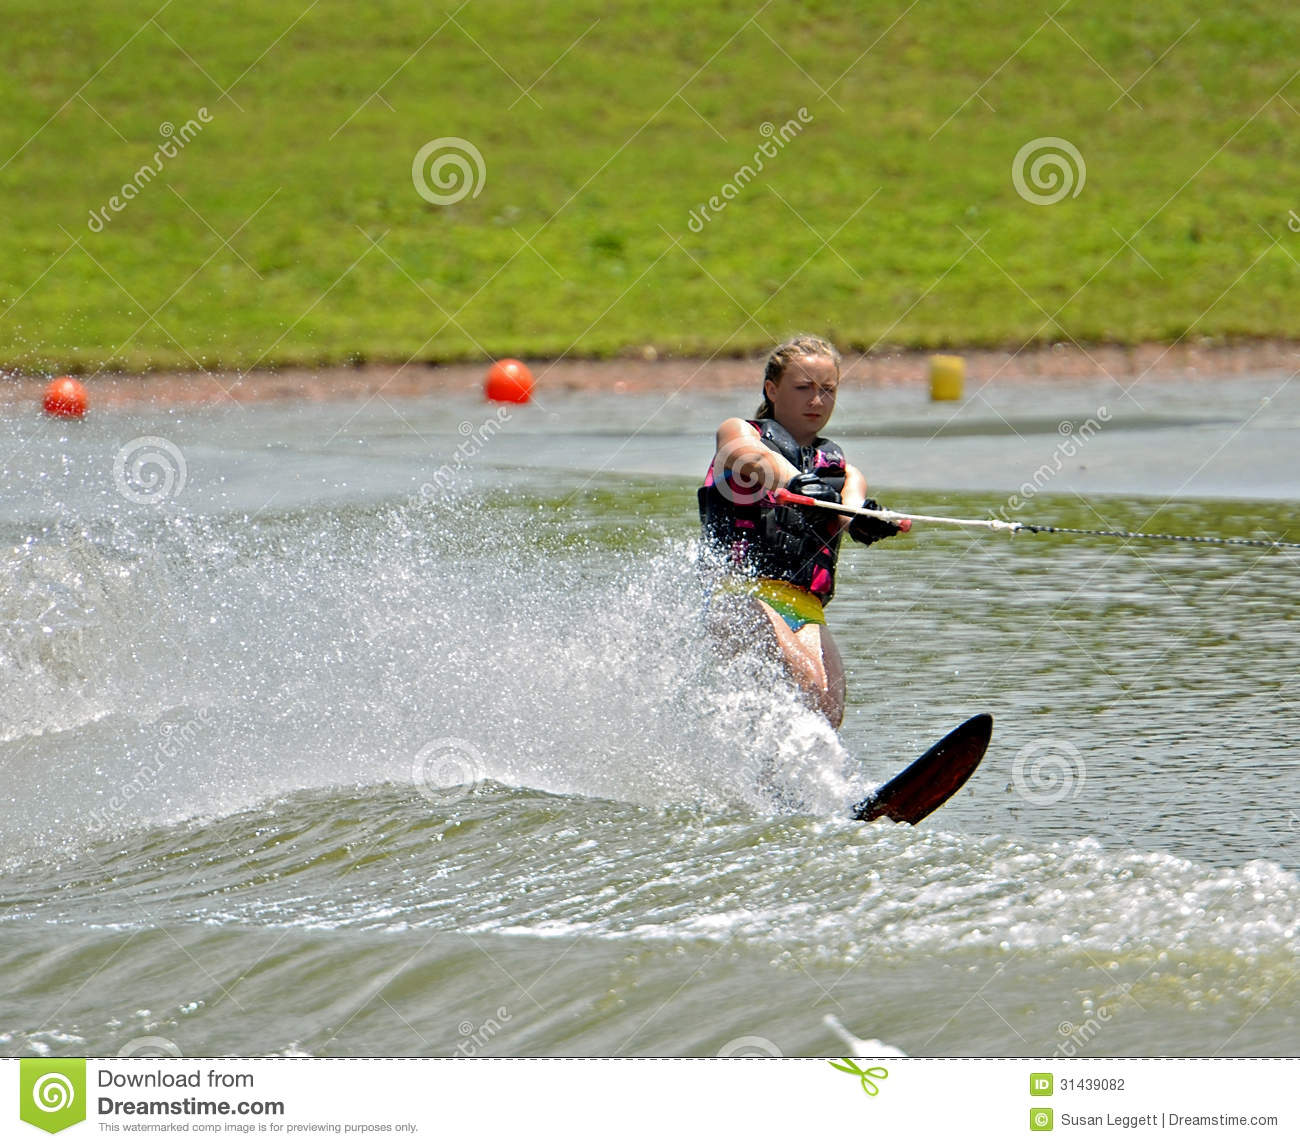 how to build a slalom ski course